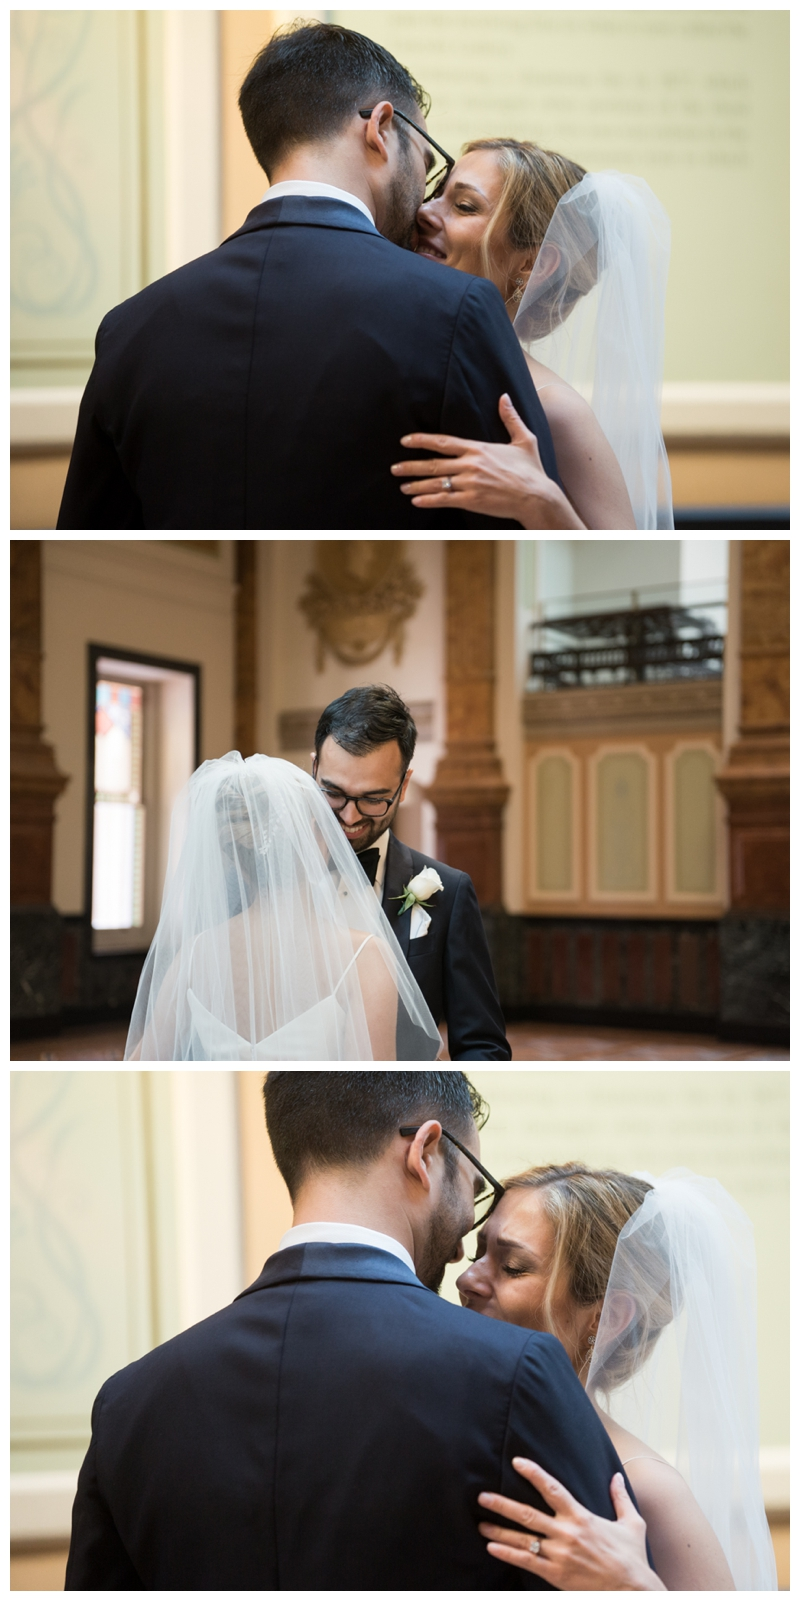 Wedding in Washington DC at the National Portrait Gallery by Rachael Foster Photography_0019.jpg